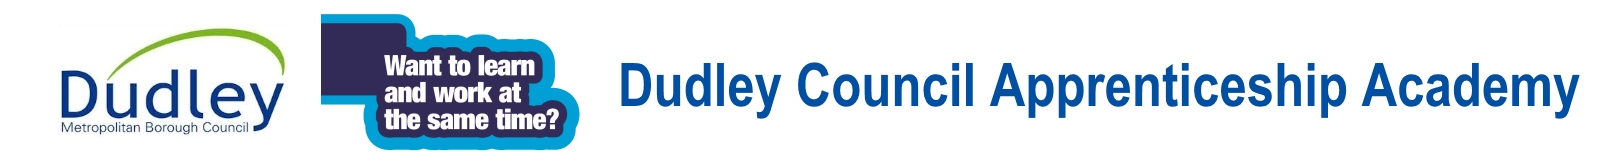 Dudley Council Apprenticeships Academy